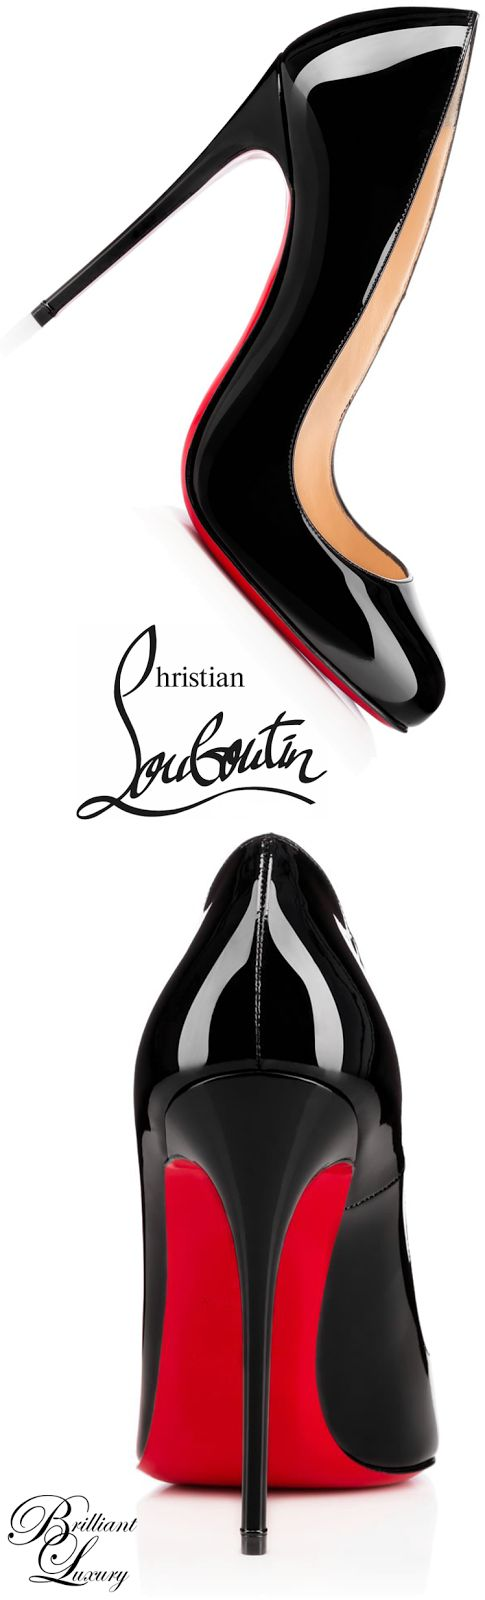 Brilliant Luxury * Christian Louboutin 'Dorissima' 2015